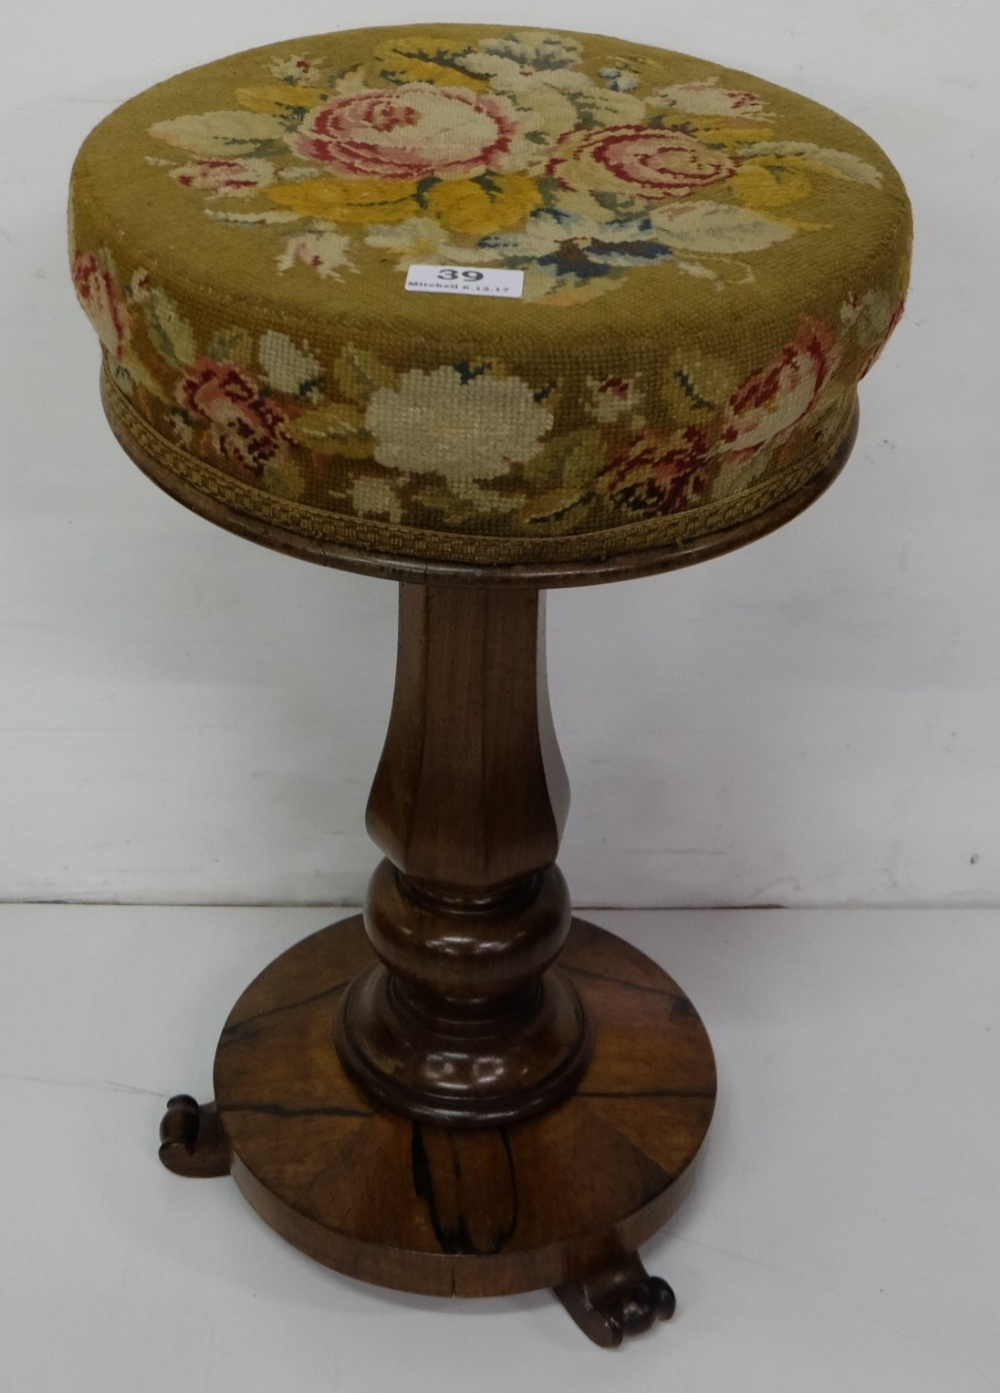 Lot 39 - WMIV Rosewood Piano Stool, with floral needlepoint covered seat